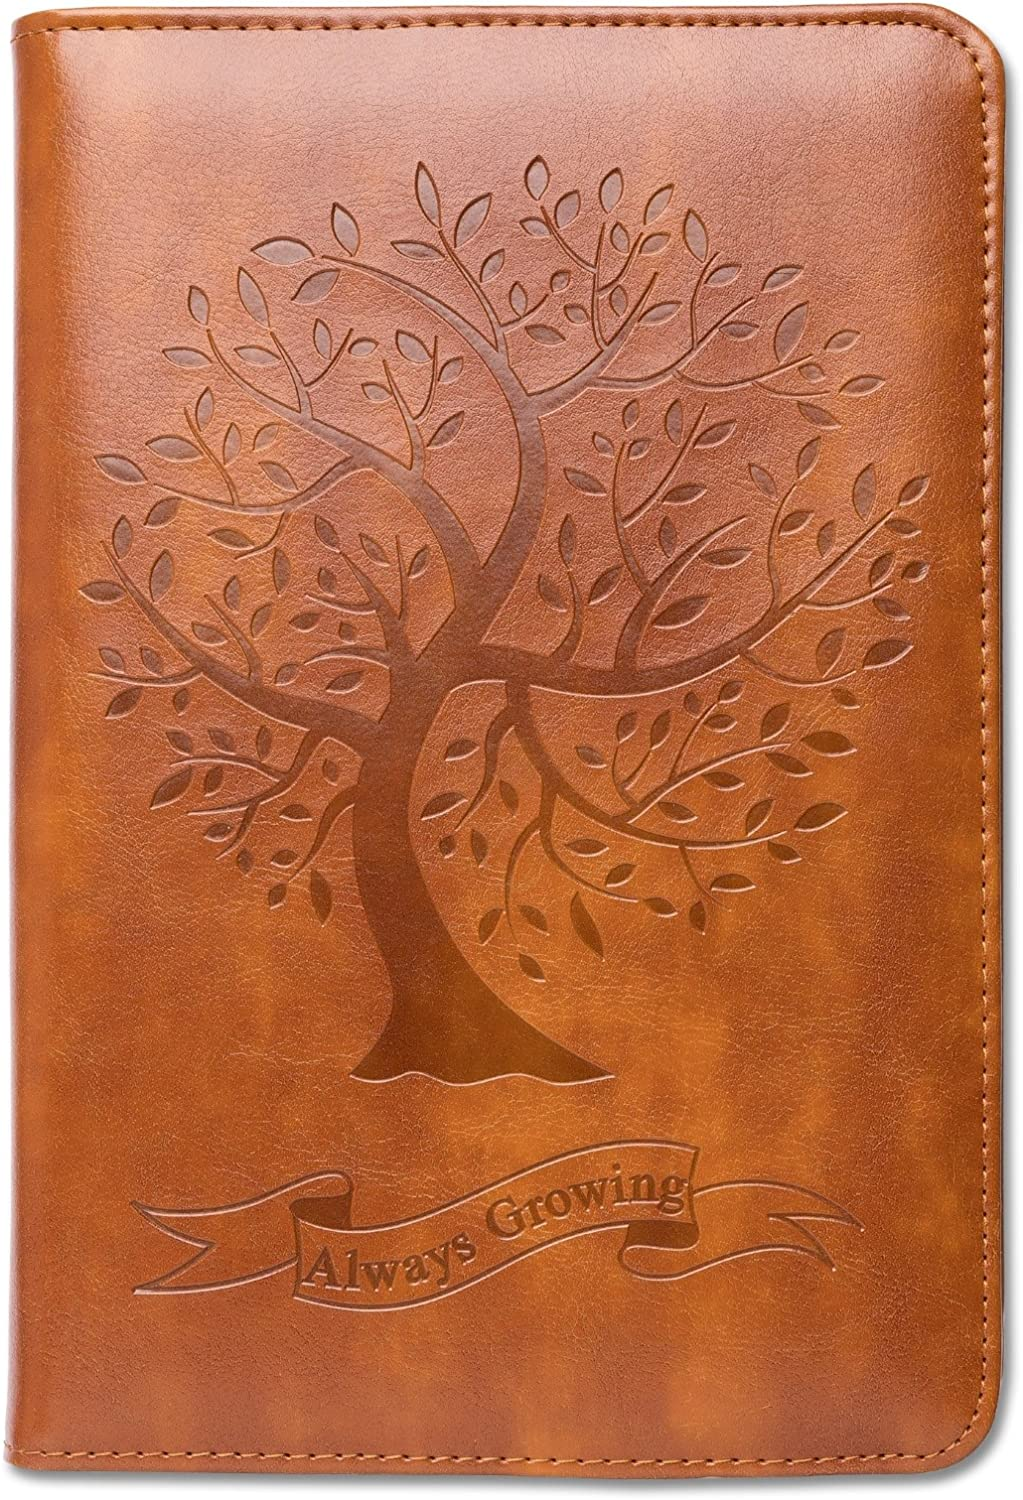 Tree Journal, Writing Journal, Personal Diary, A5 Lined Journal, Writers Notebook, Personal Journal, Faux Leather Journal, Refillable, Gift for Writers and Travelers, Men or Women, Fountain Pen Safe